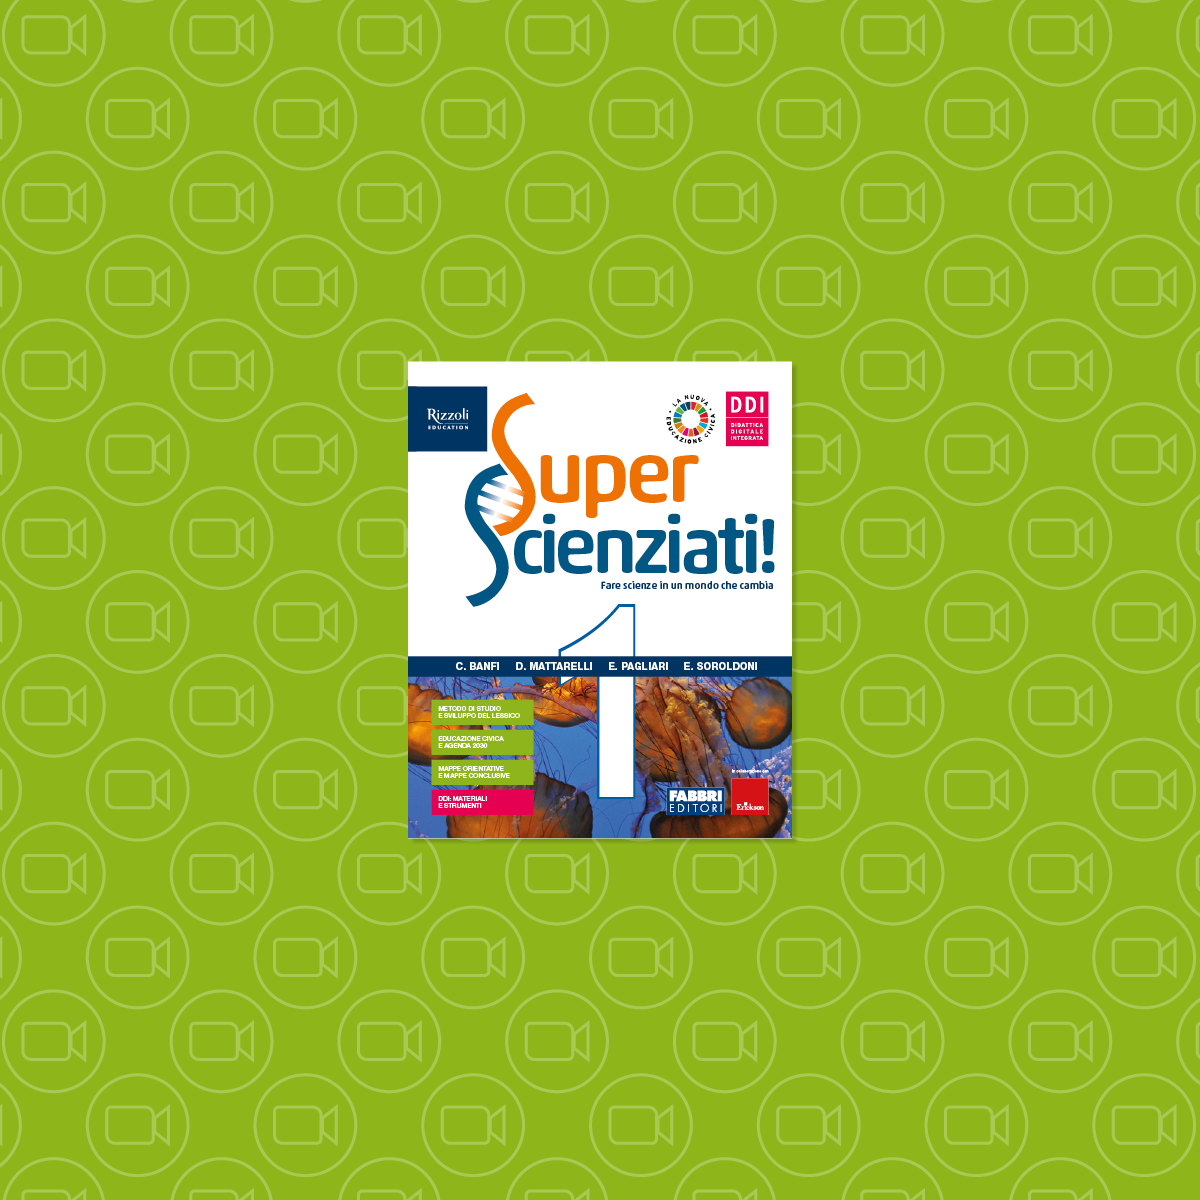 Superscienziati